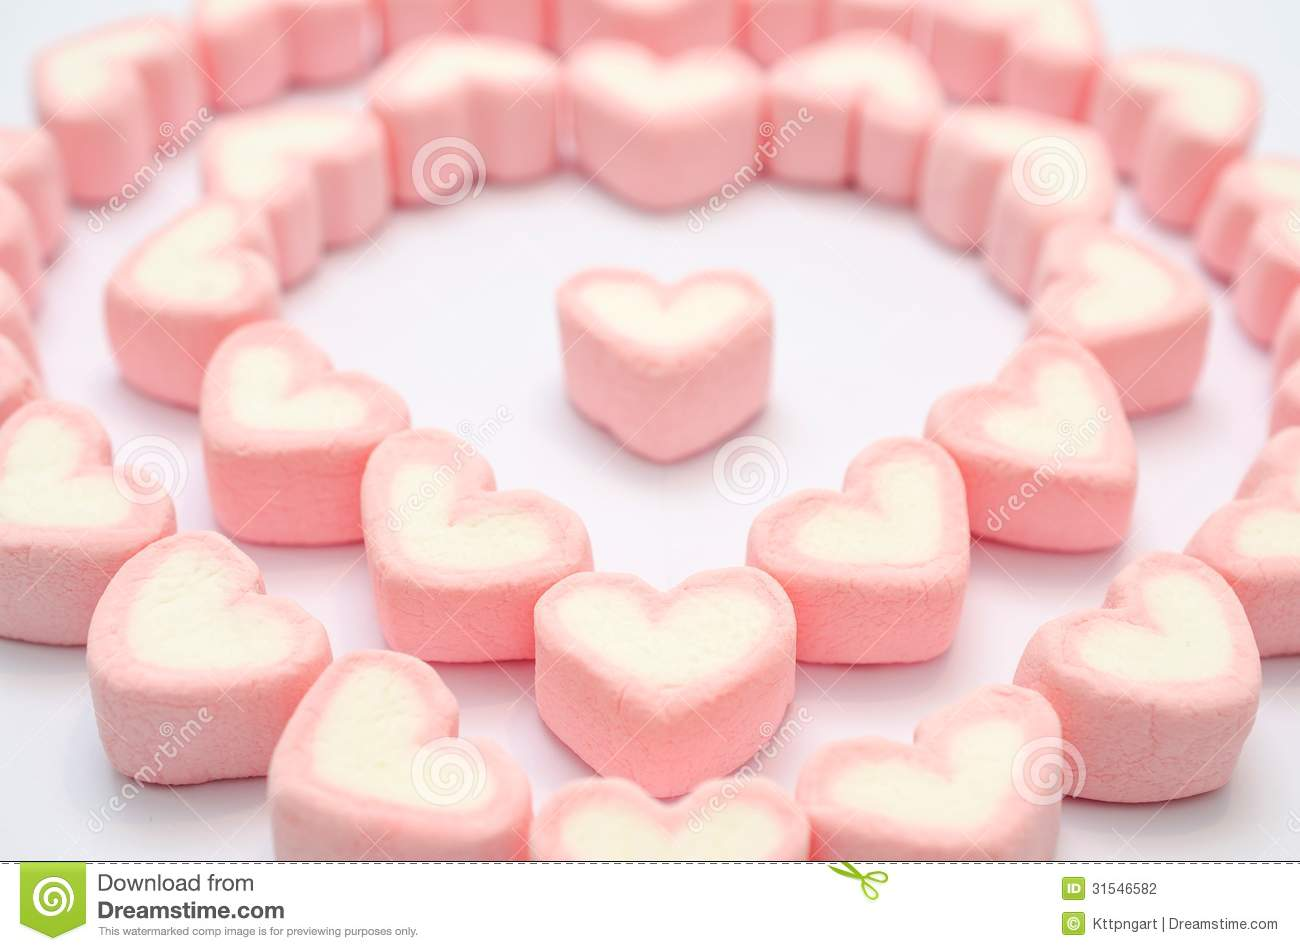 Pink Heart Marshmallow Stock Photography - Image: 31546582